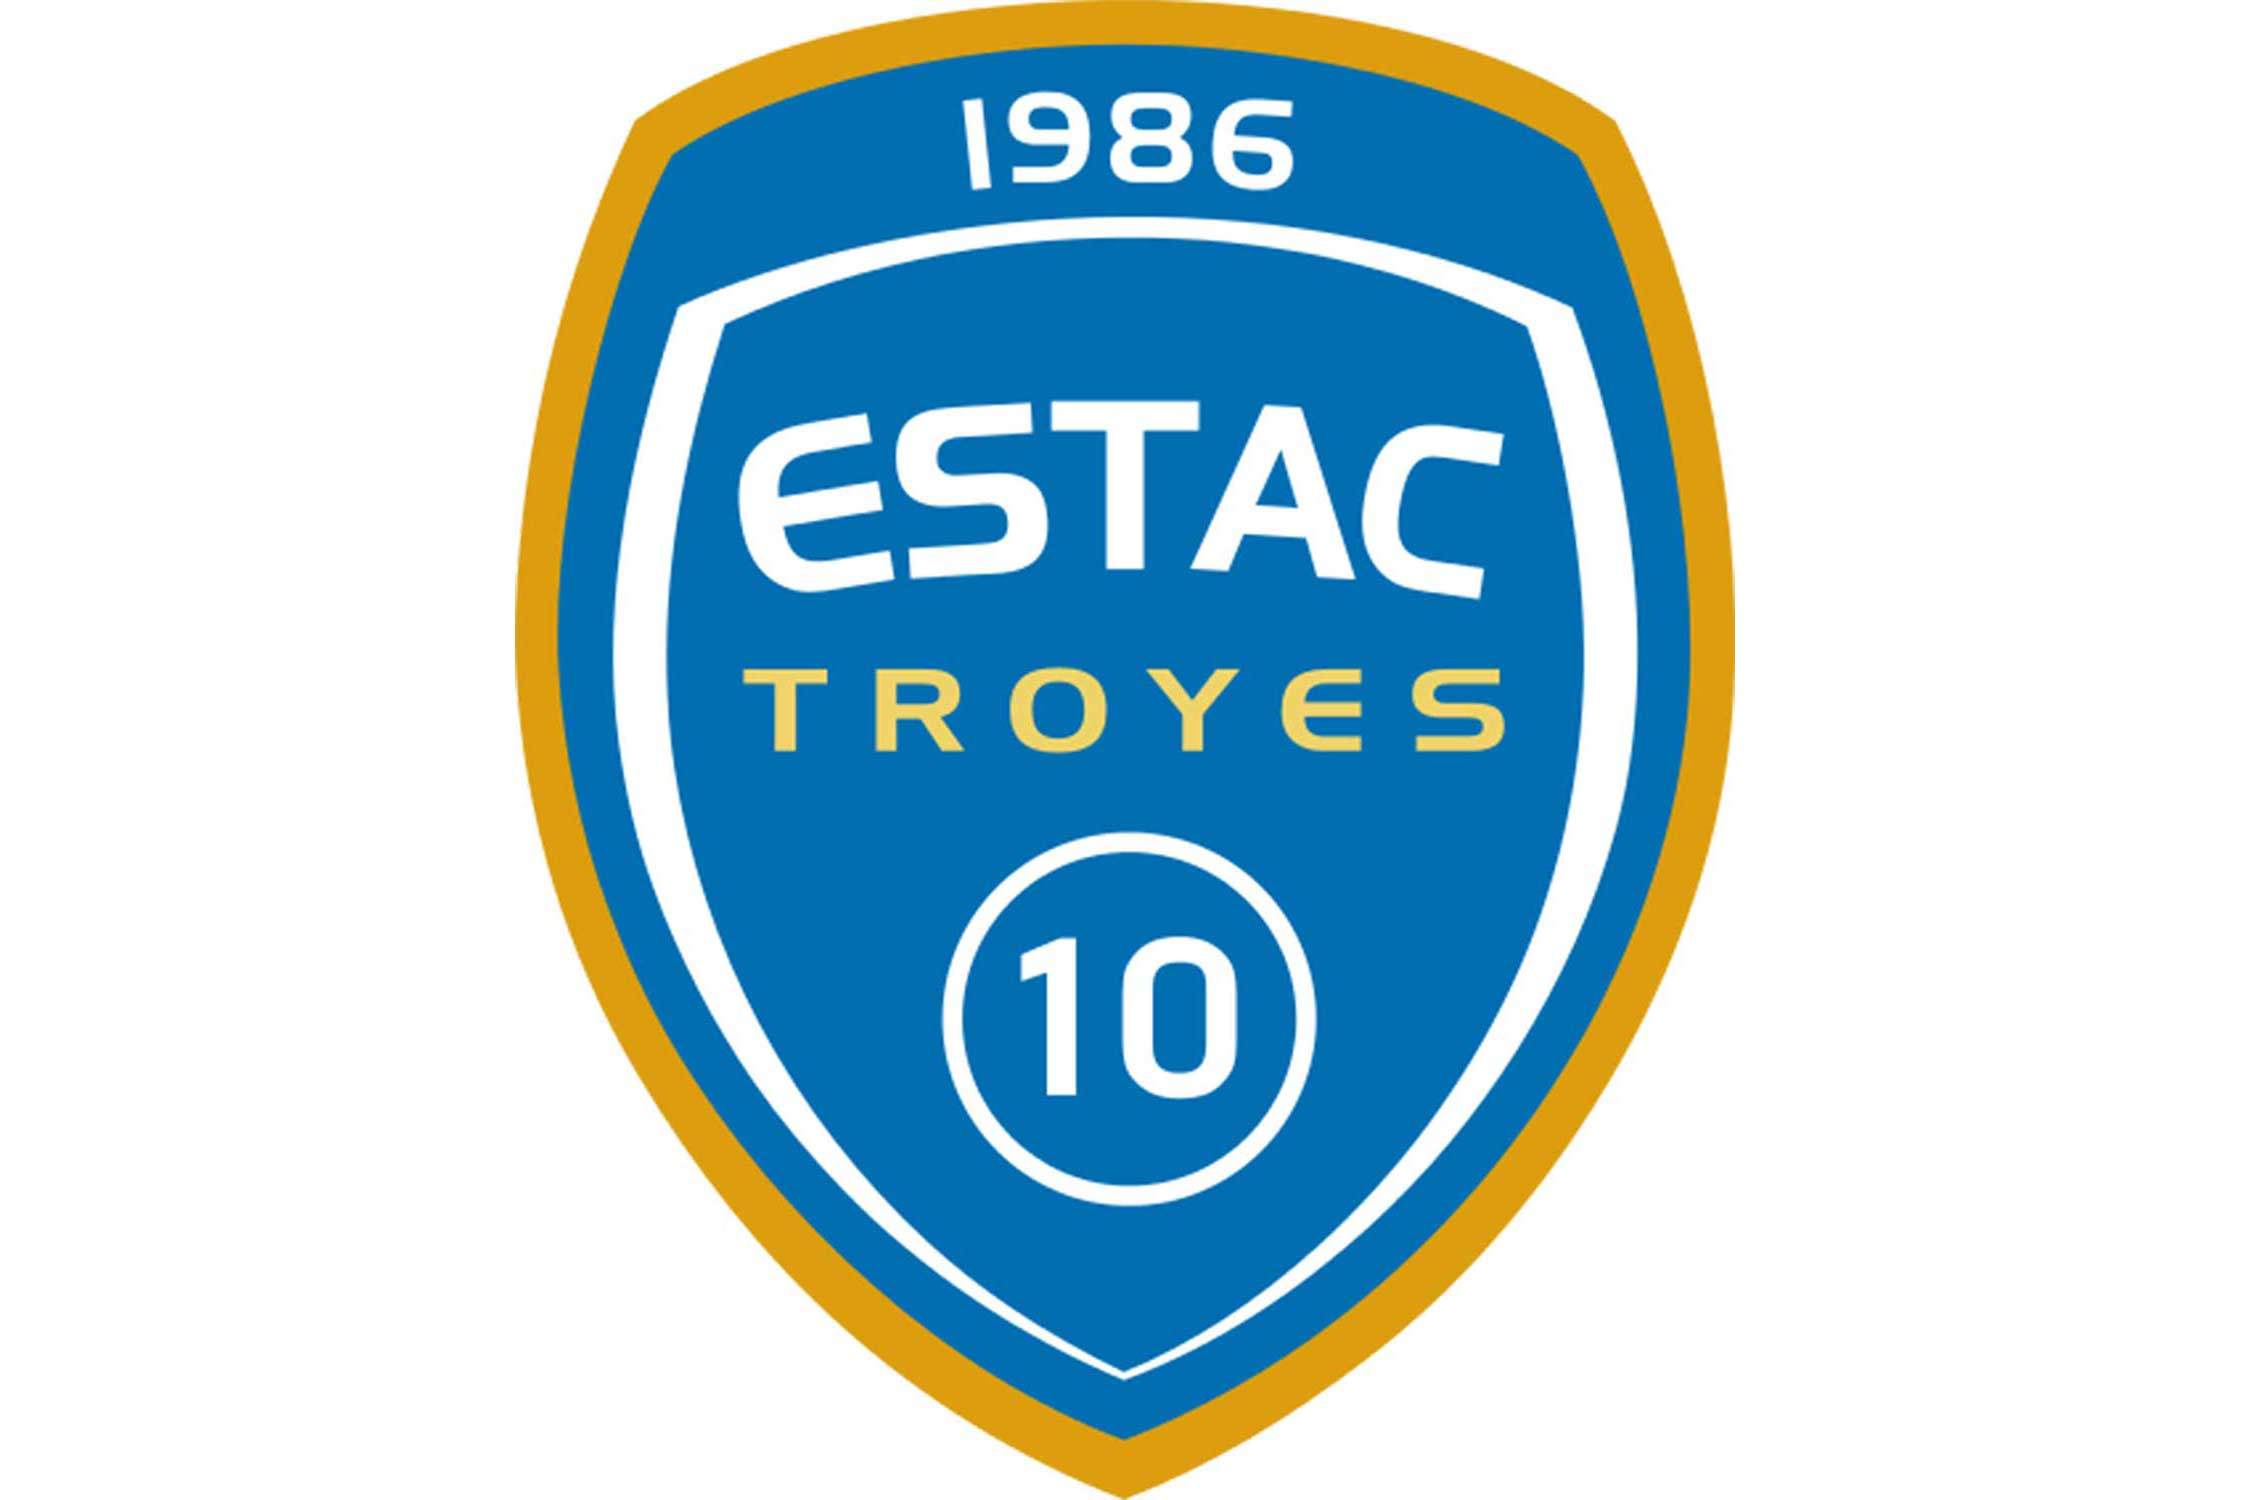 The country of France is separated into 101 departments, each of which is numbered. That number is then used in zip codes, license plates, and for other official uses. Aube, the department where Troyes is based, is No. 10, hence its use in the club's logo